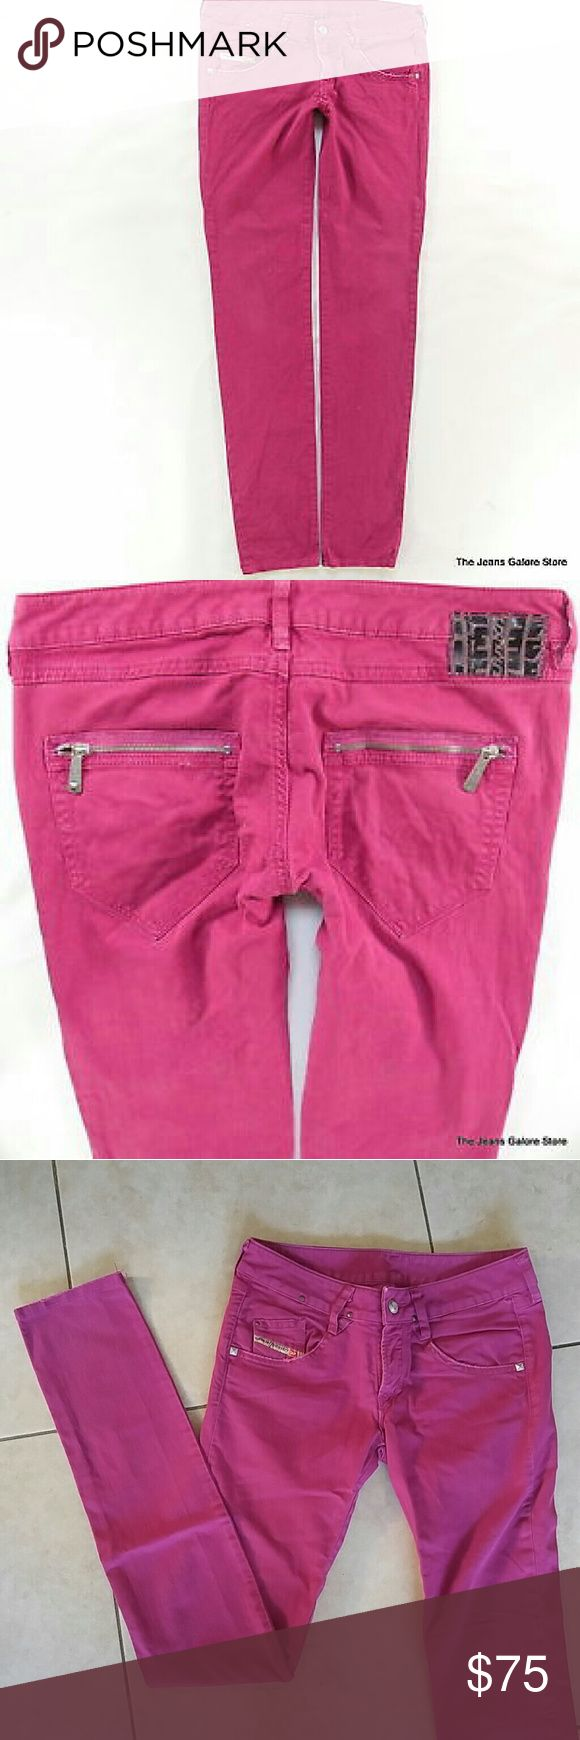 Diesel jeans size 26 HotPink Diesel jeans size 26 HotPink  Low Rise, Straight Leg Lightly worn Zippers and Stud details 98% cotton 2% spandex Diesel Jeans Skinny